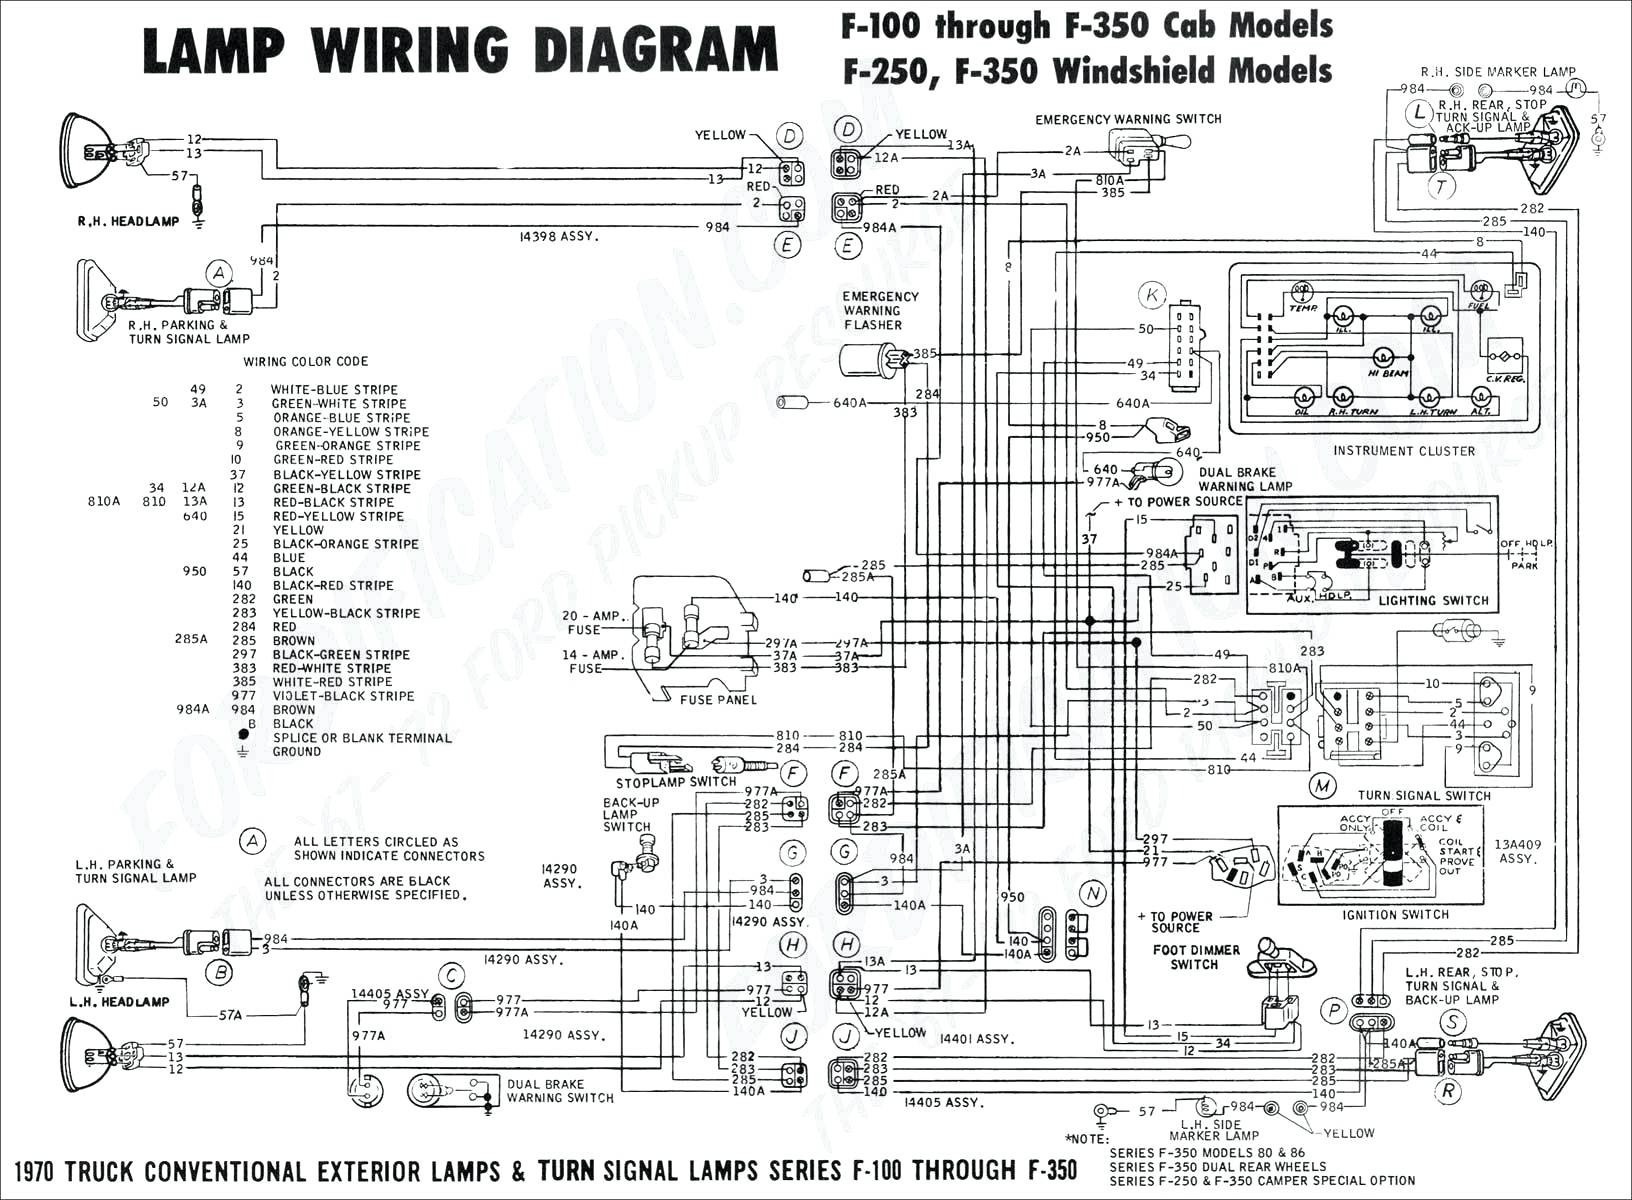 2004 Honda Civic Airbag Wiring Diagram